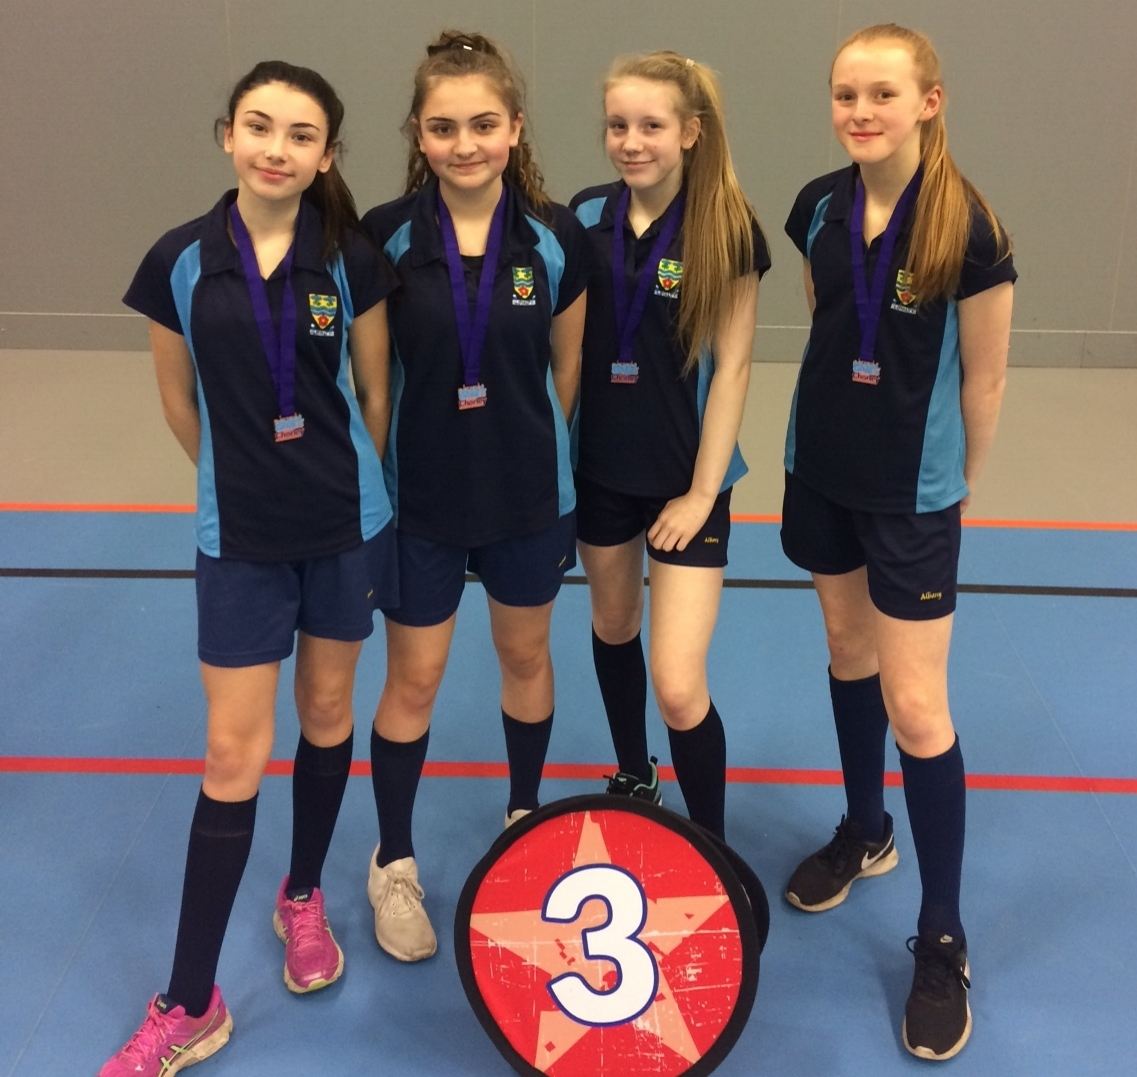 Year 8 girls team recieved medals as 3rd place overall